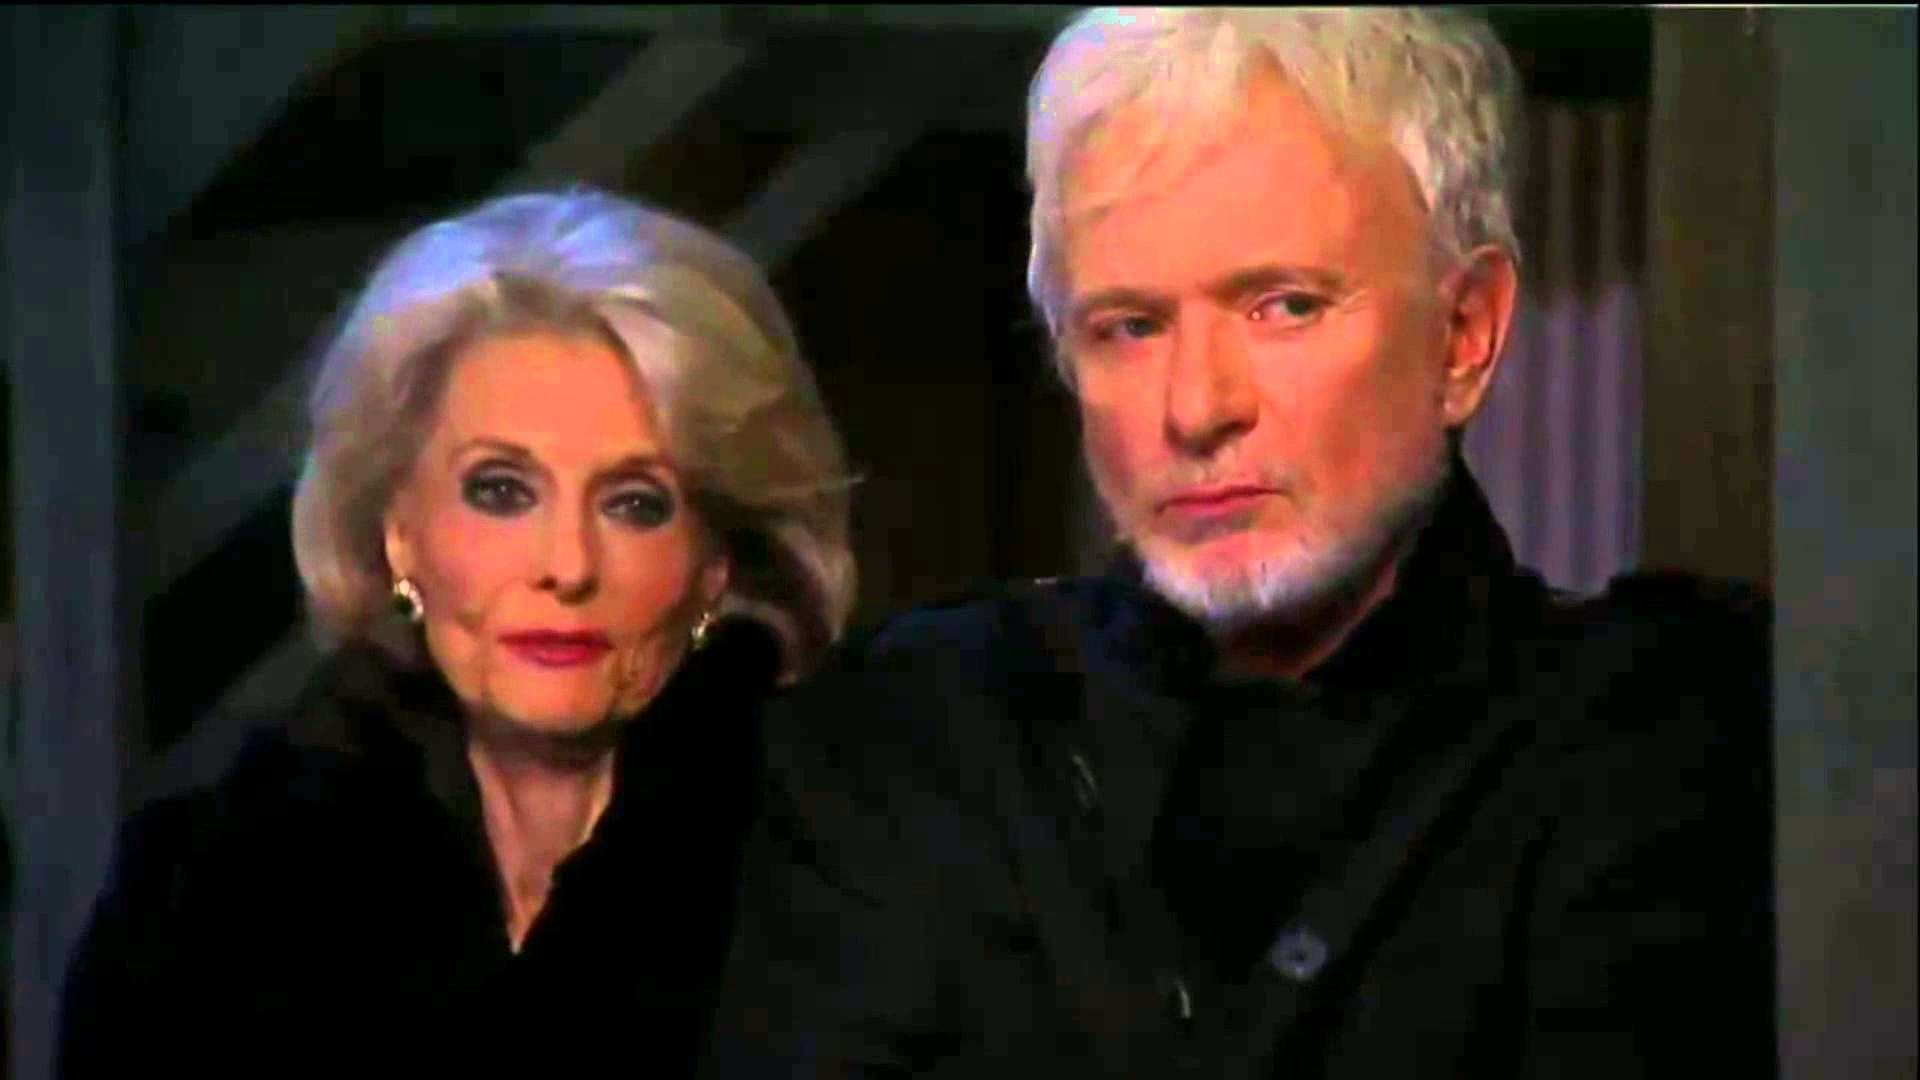 General hospital cast members leaving - Constance Towers Anthony Geary On General Hospital